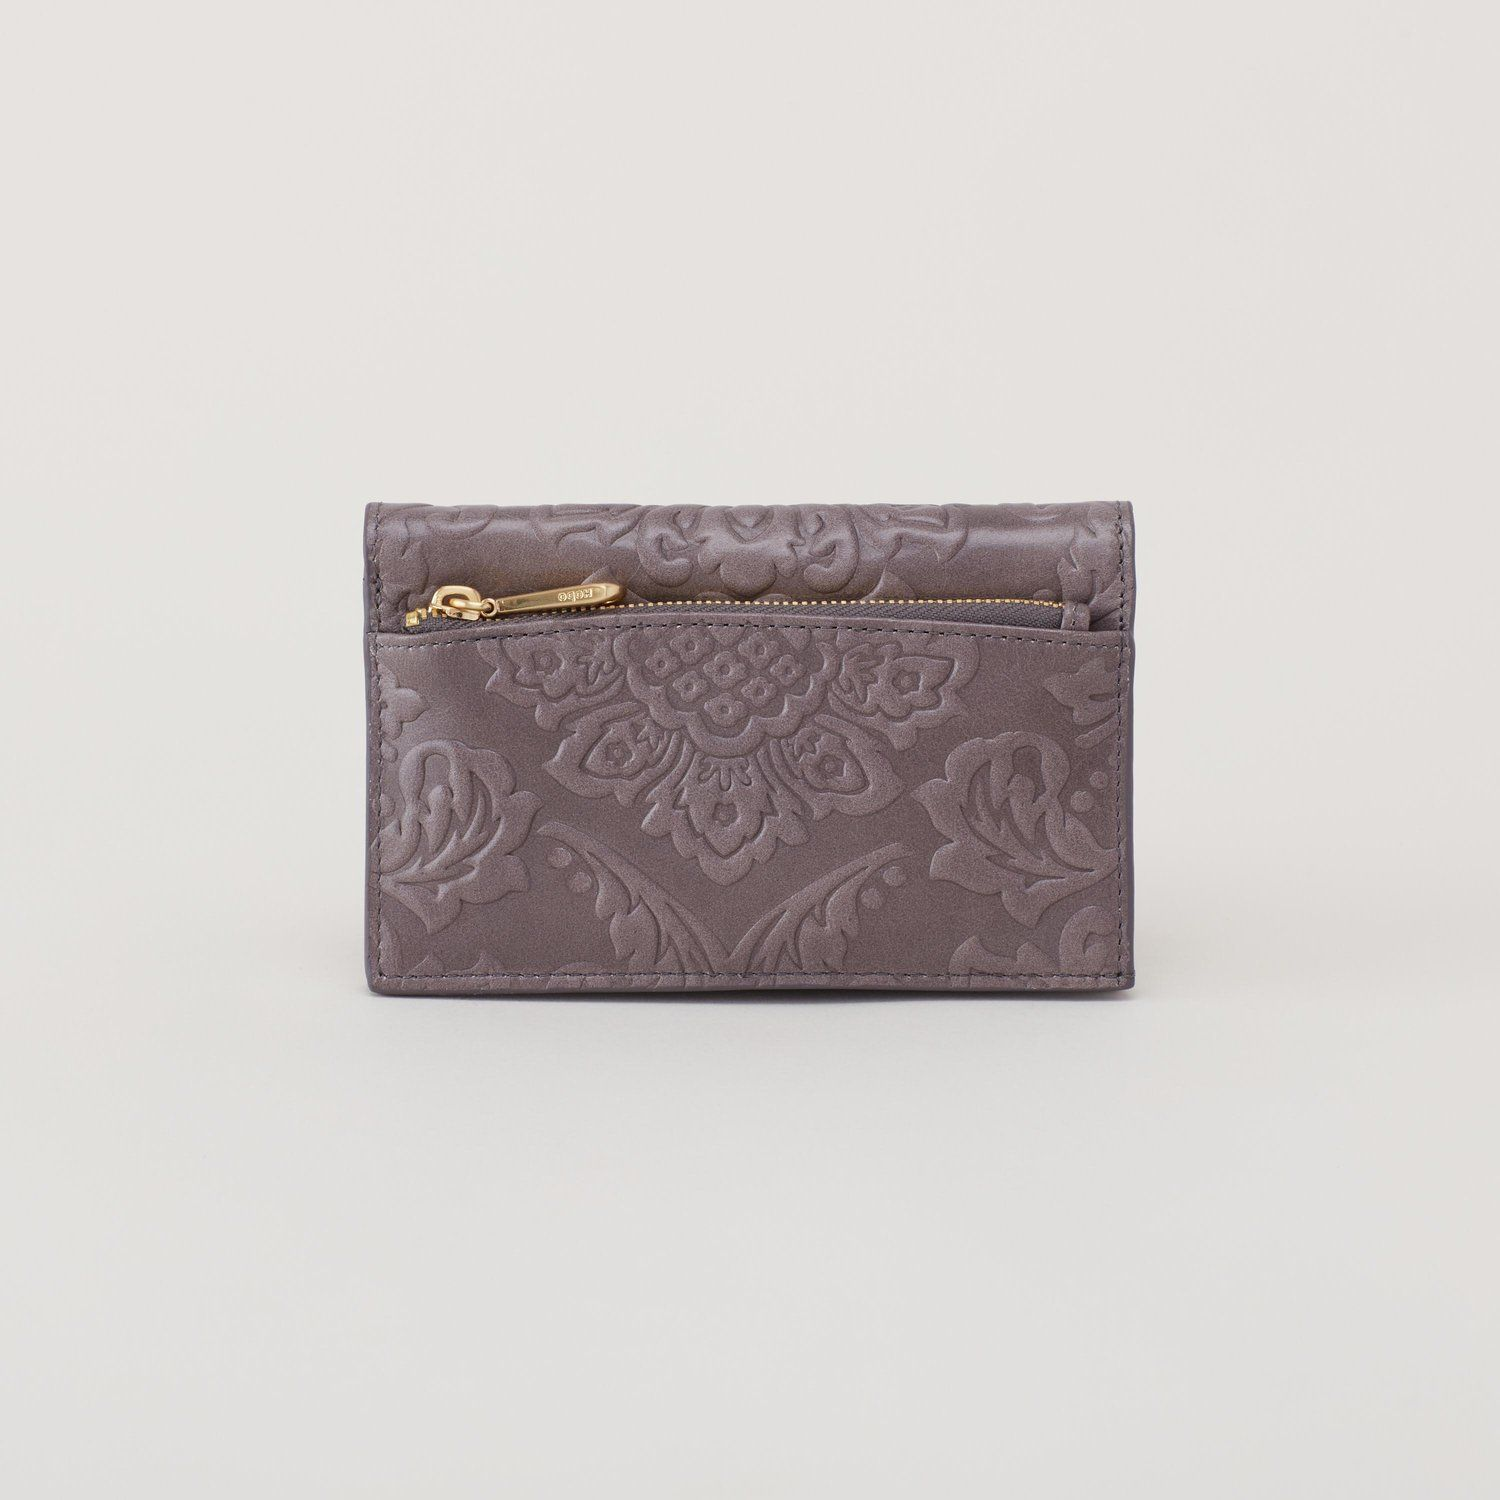 VIDA Leather Statement Clutch - Forest Floor by VIDA quain